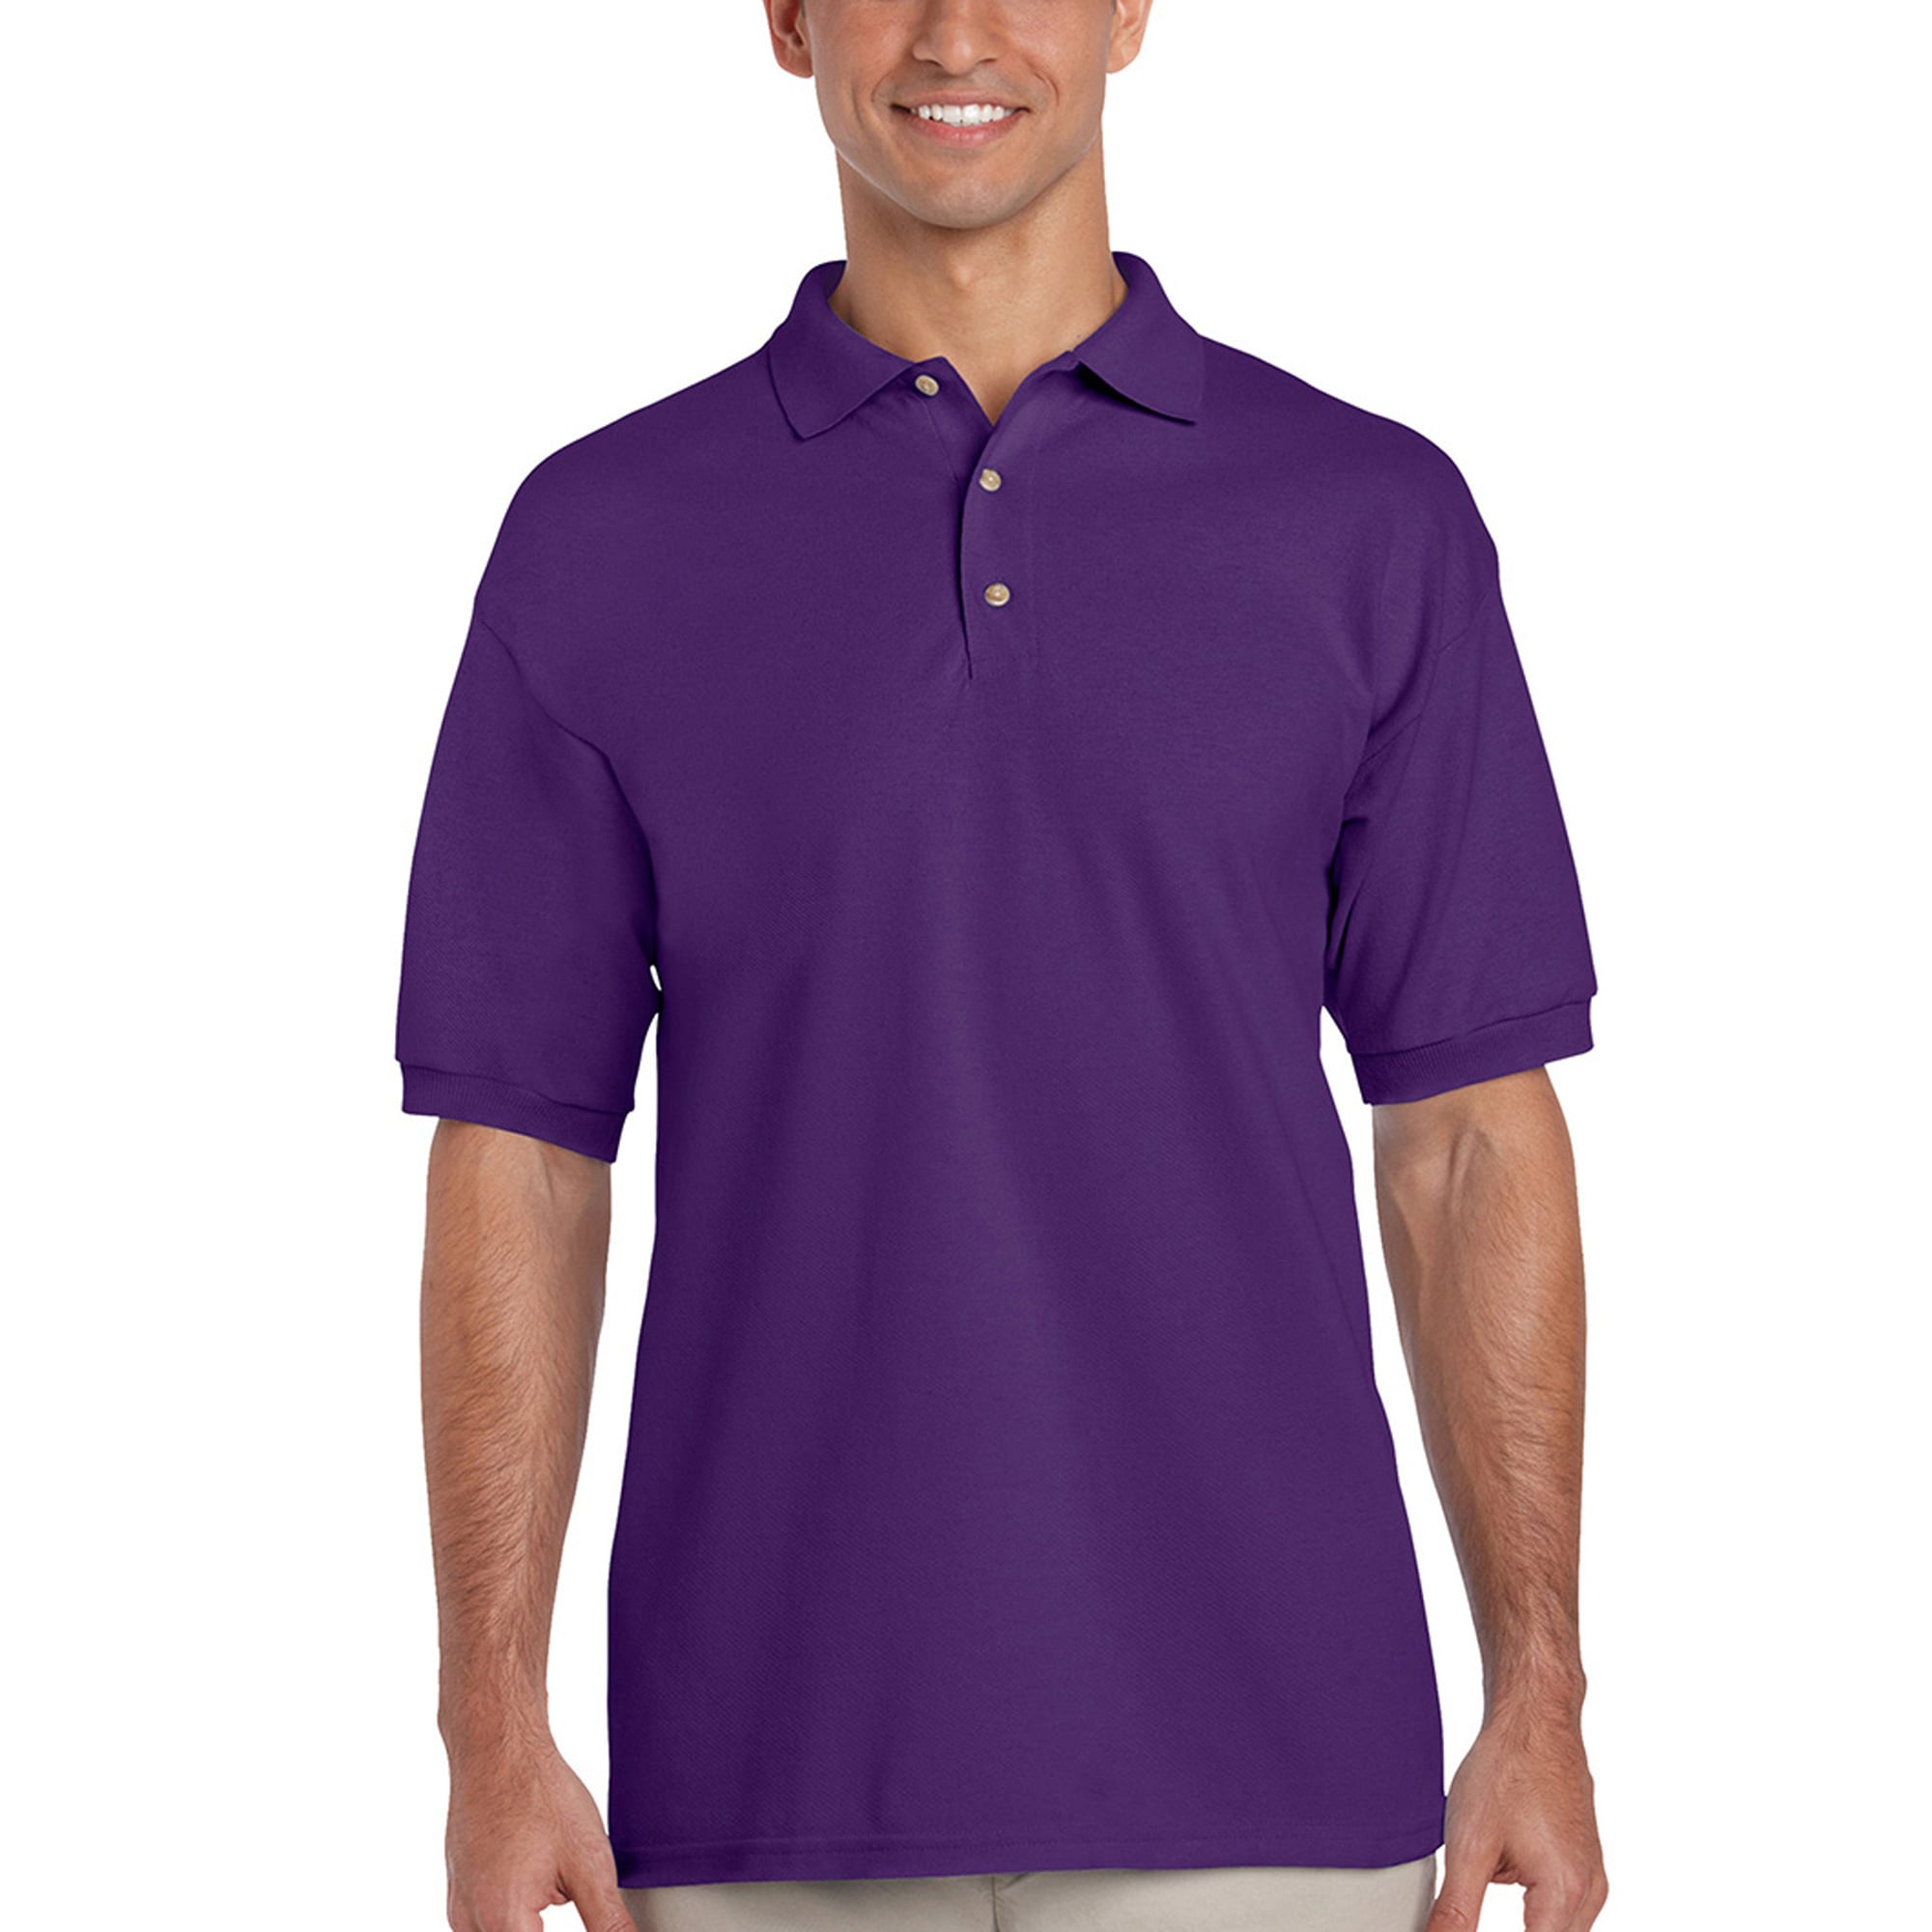 aa7868ed Shop Men's Cotton Short Sleeve Polo Shirt - Free Shipping On Orders Over  $45 - Overstock - 7411787